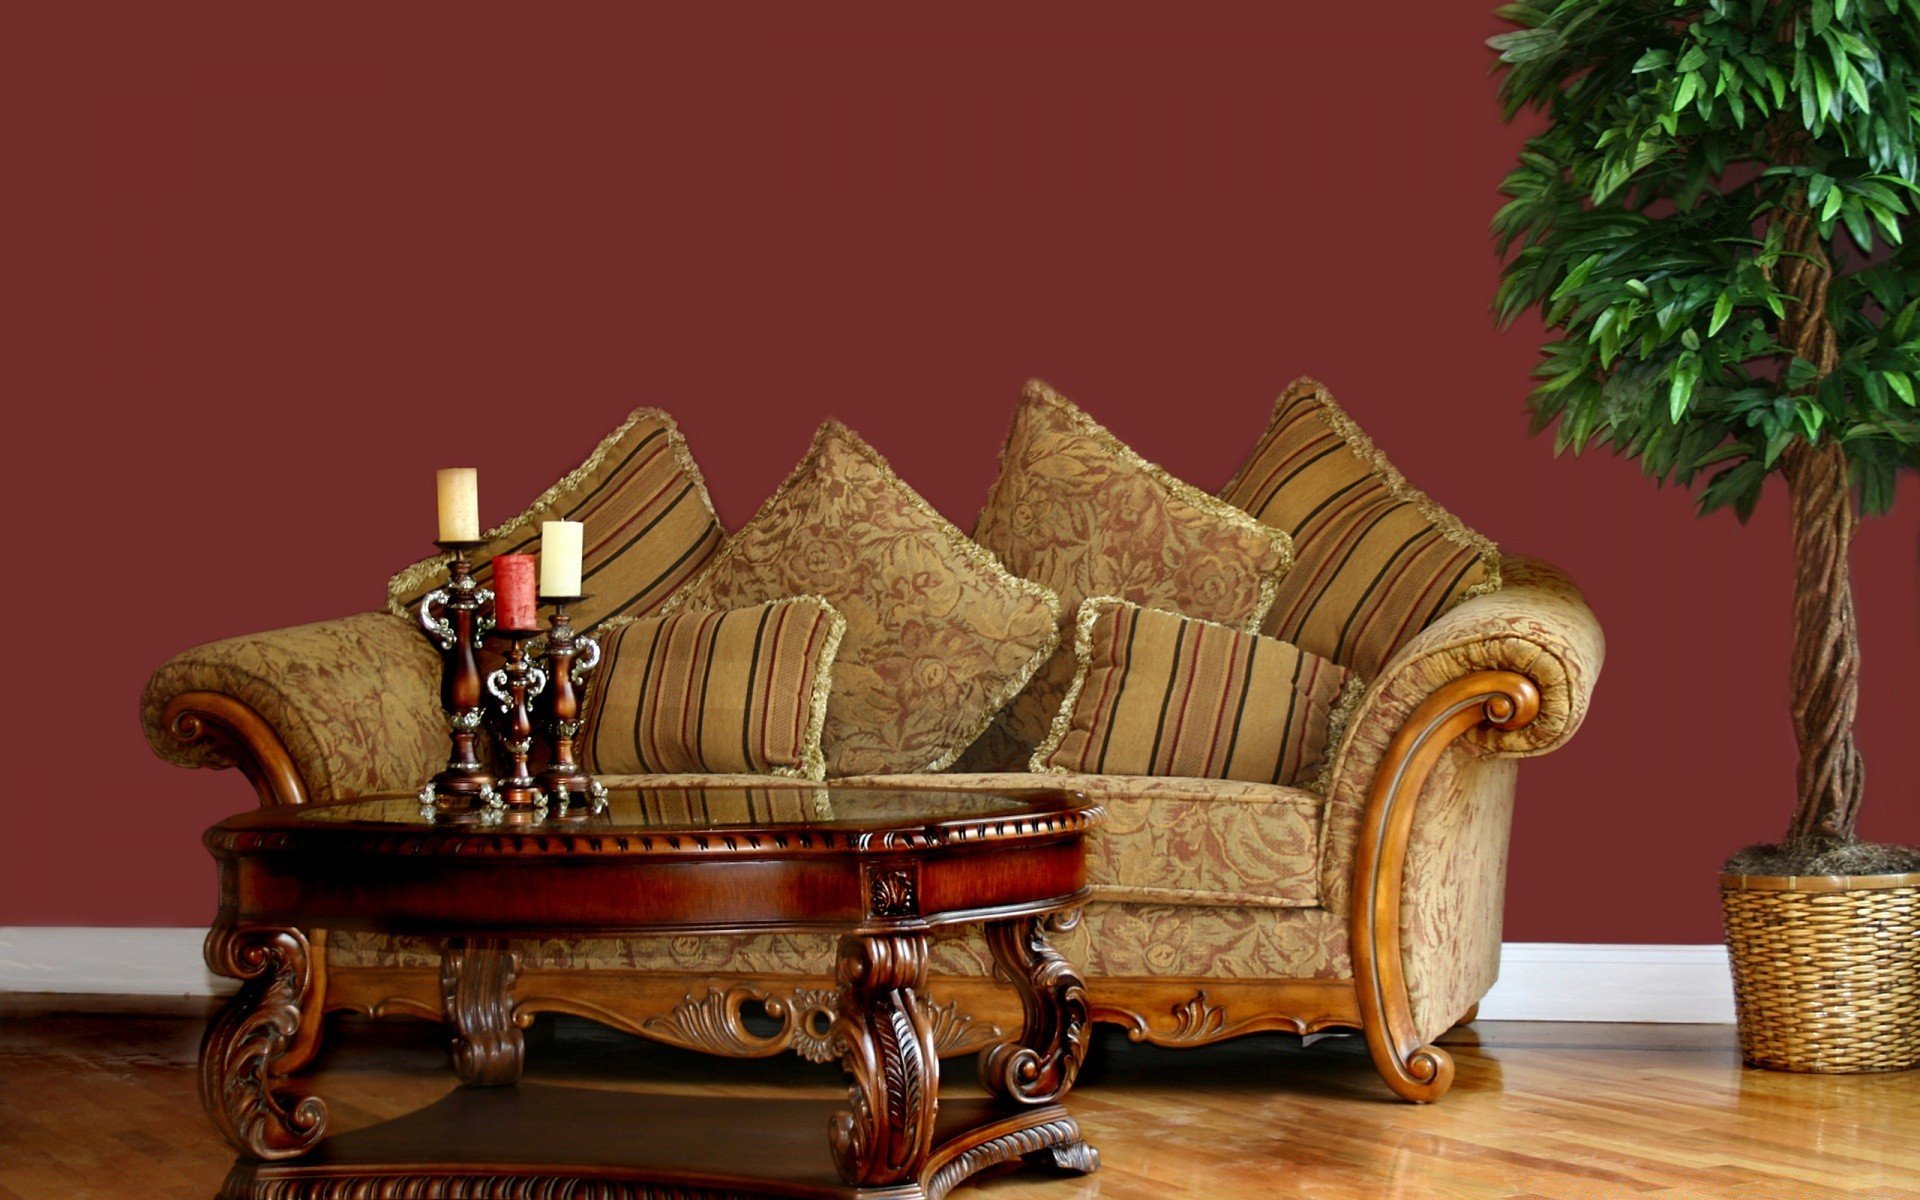 house and comfort antique furniture wood old vintage seat wooden decoration classic chair retro indoors